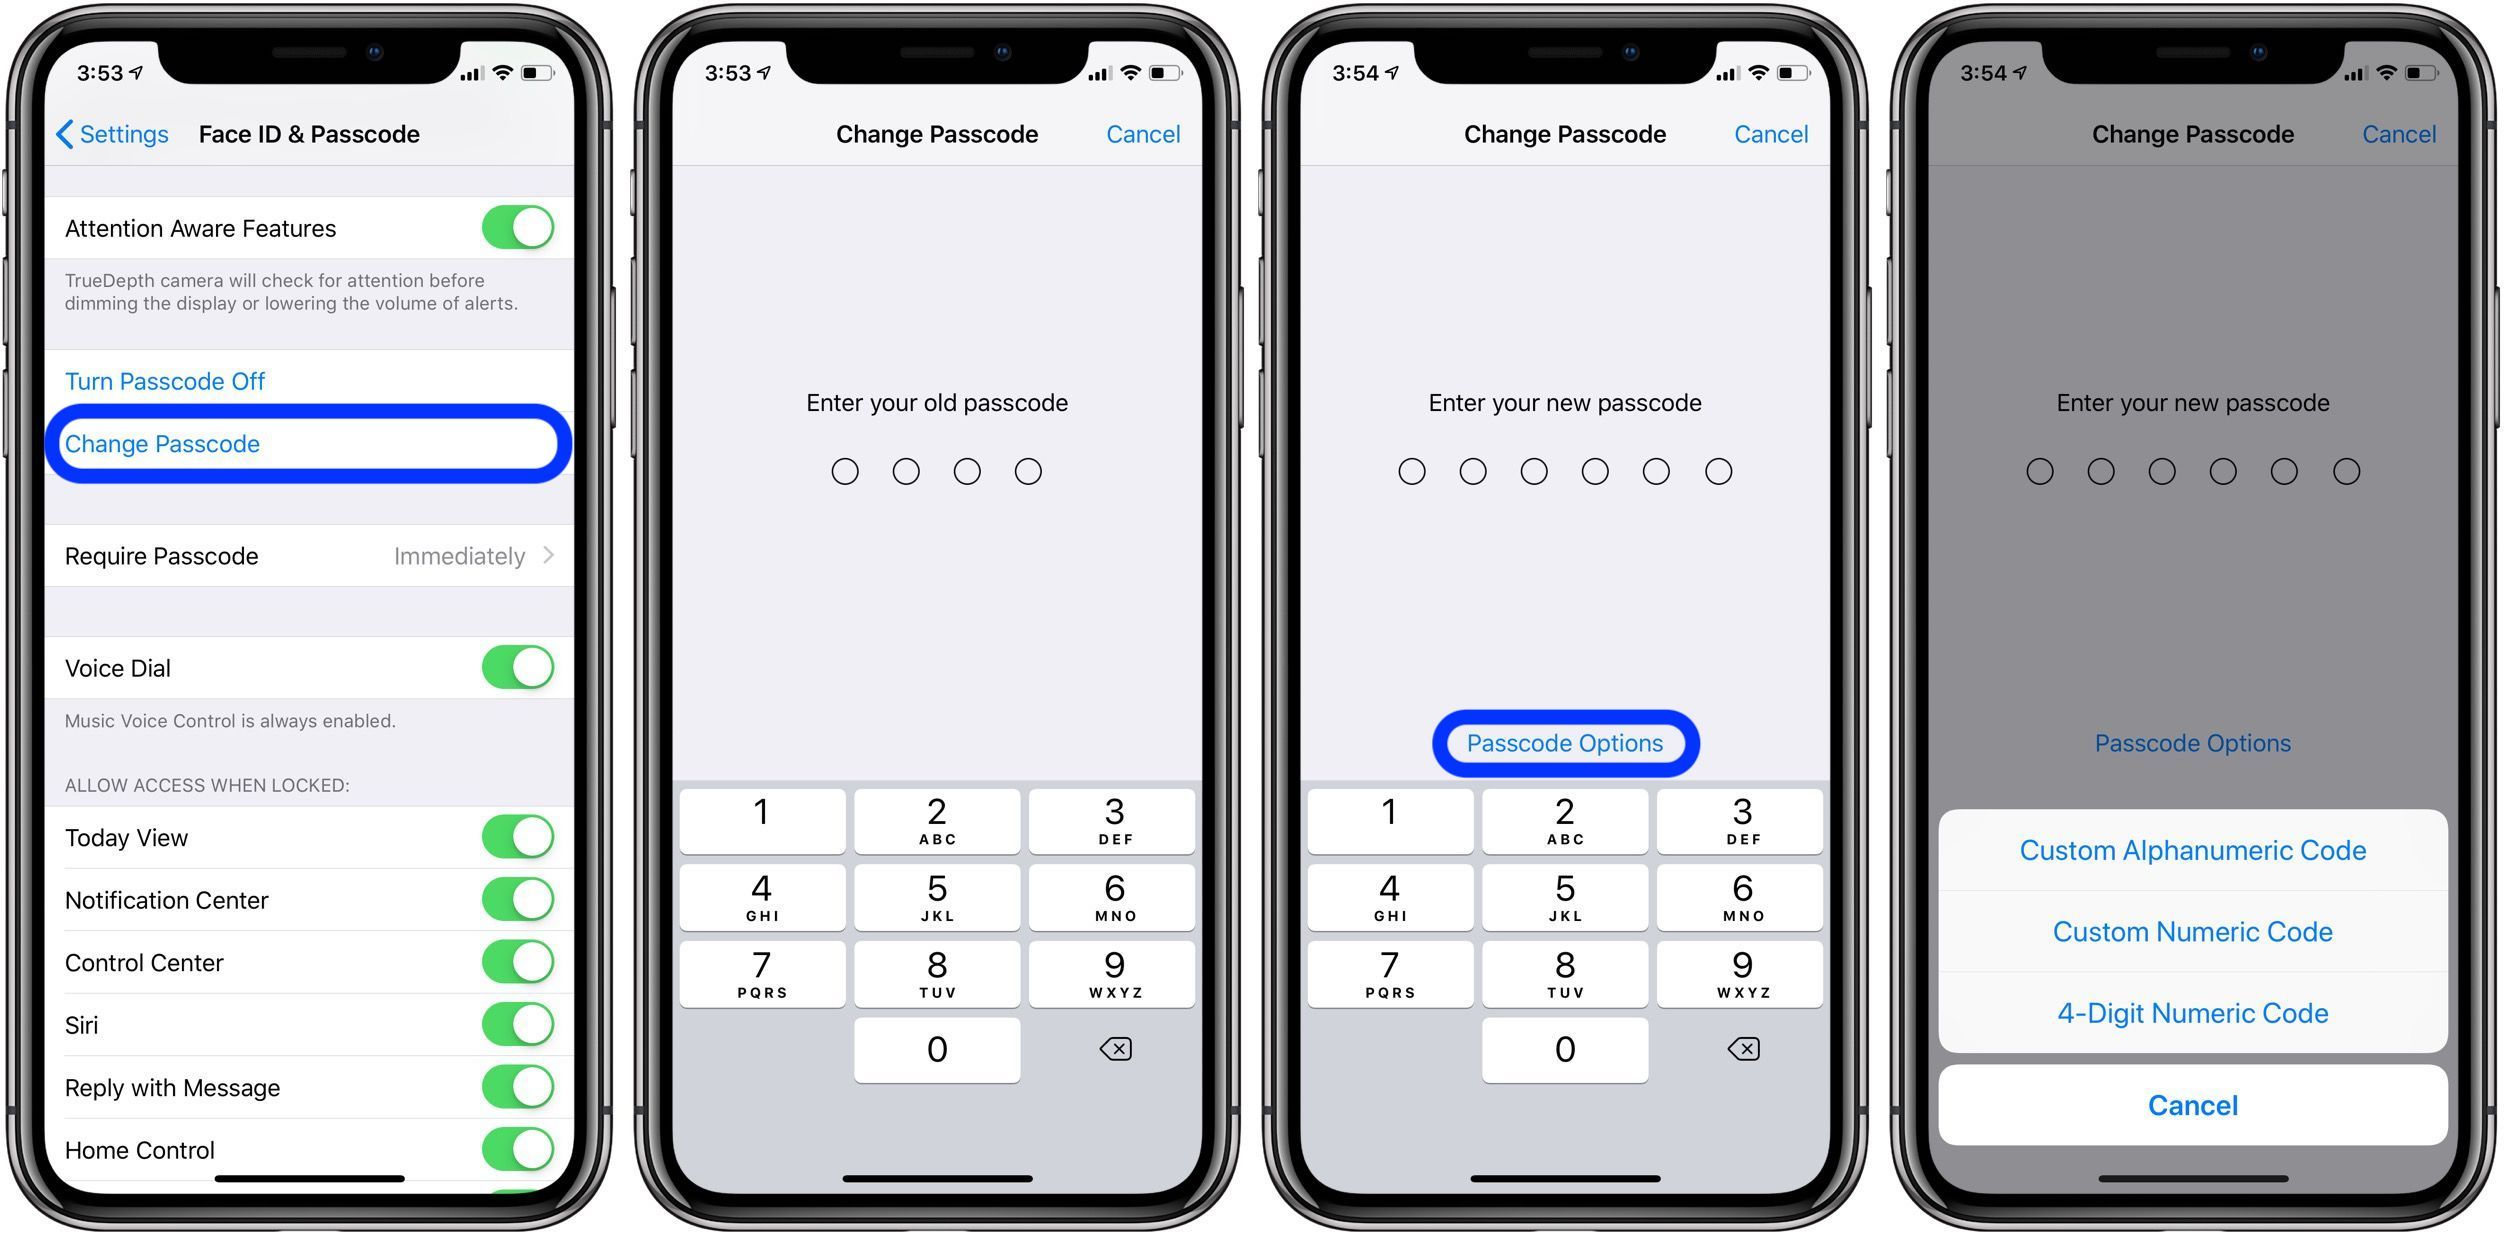 57931bf35d959f43f8cb2fcf87f476d8 - How To Get Rid Of A Passcode On An Iphone